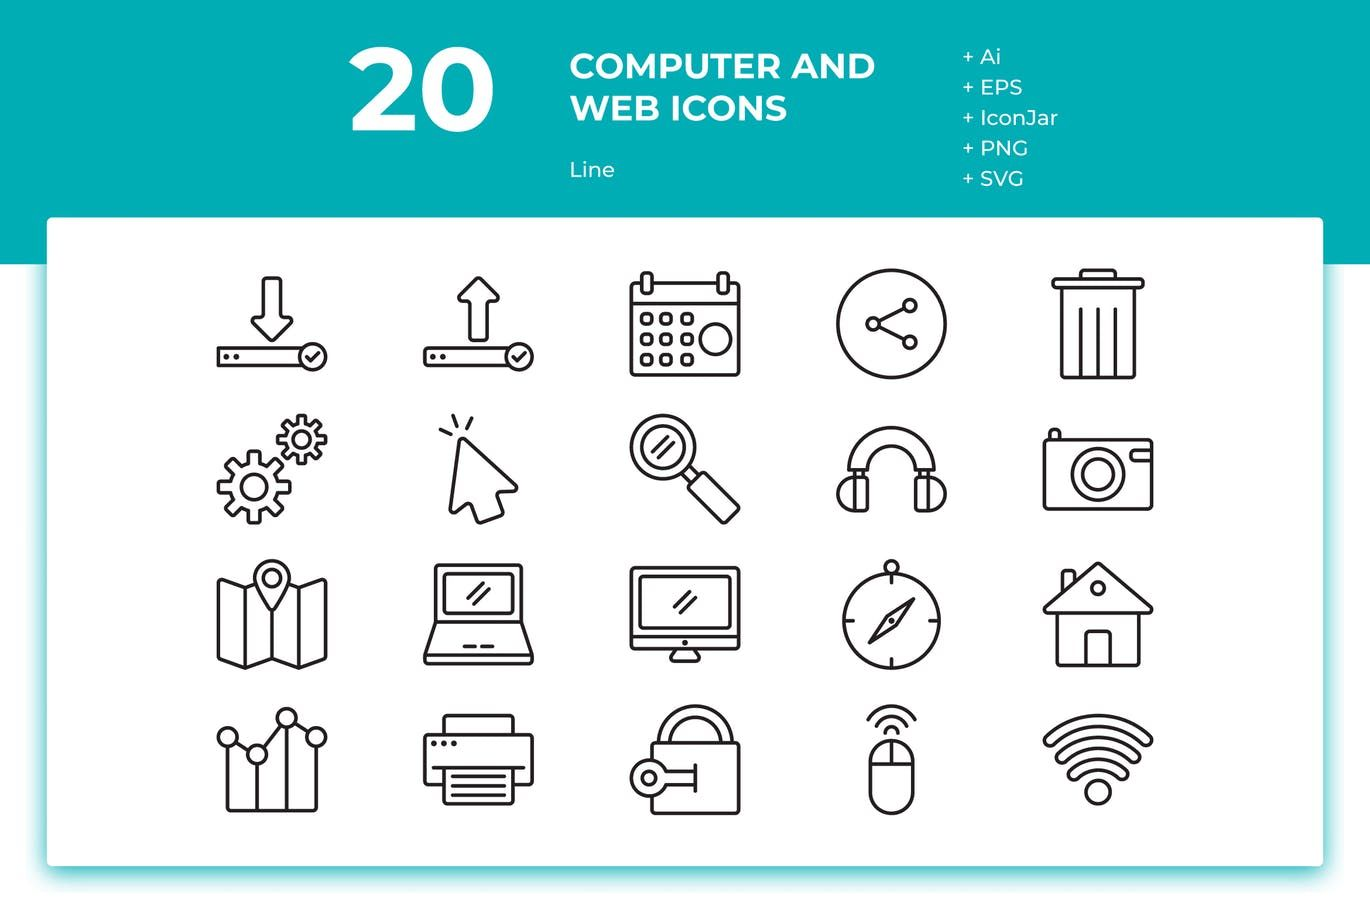 20 Computer and Web Icons (Line) AI, EPS. Download